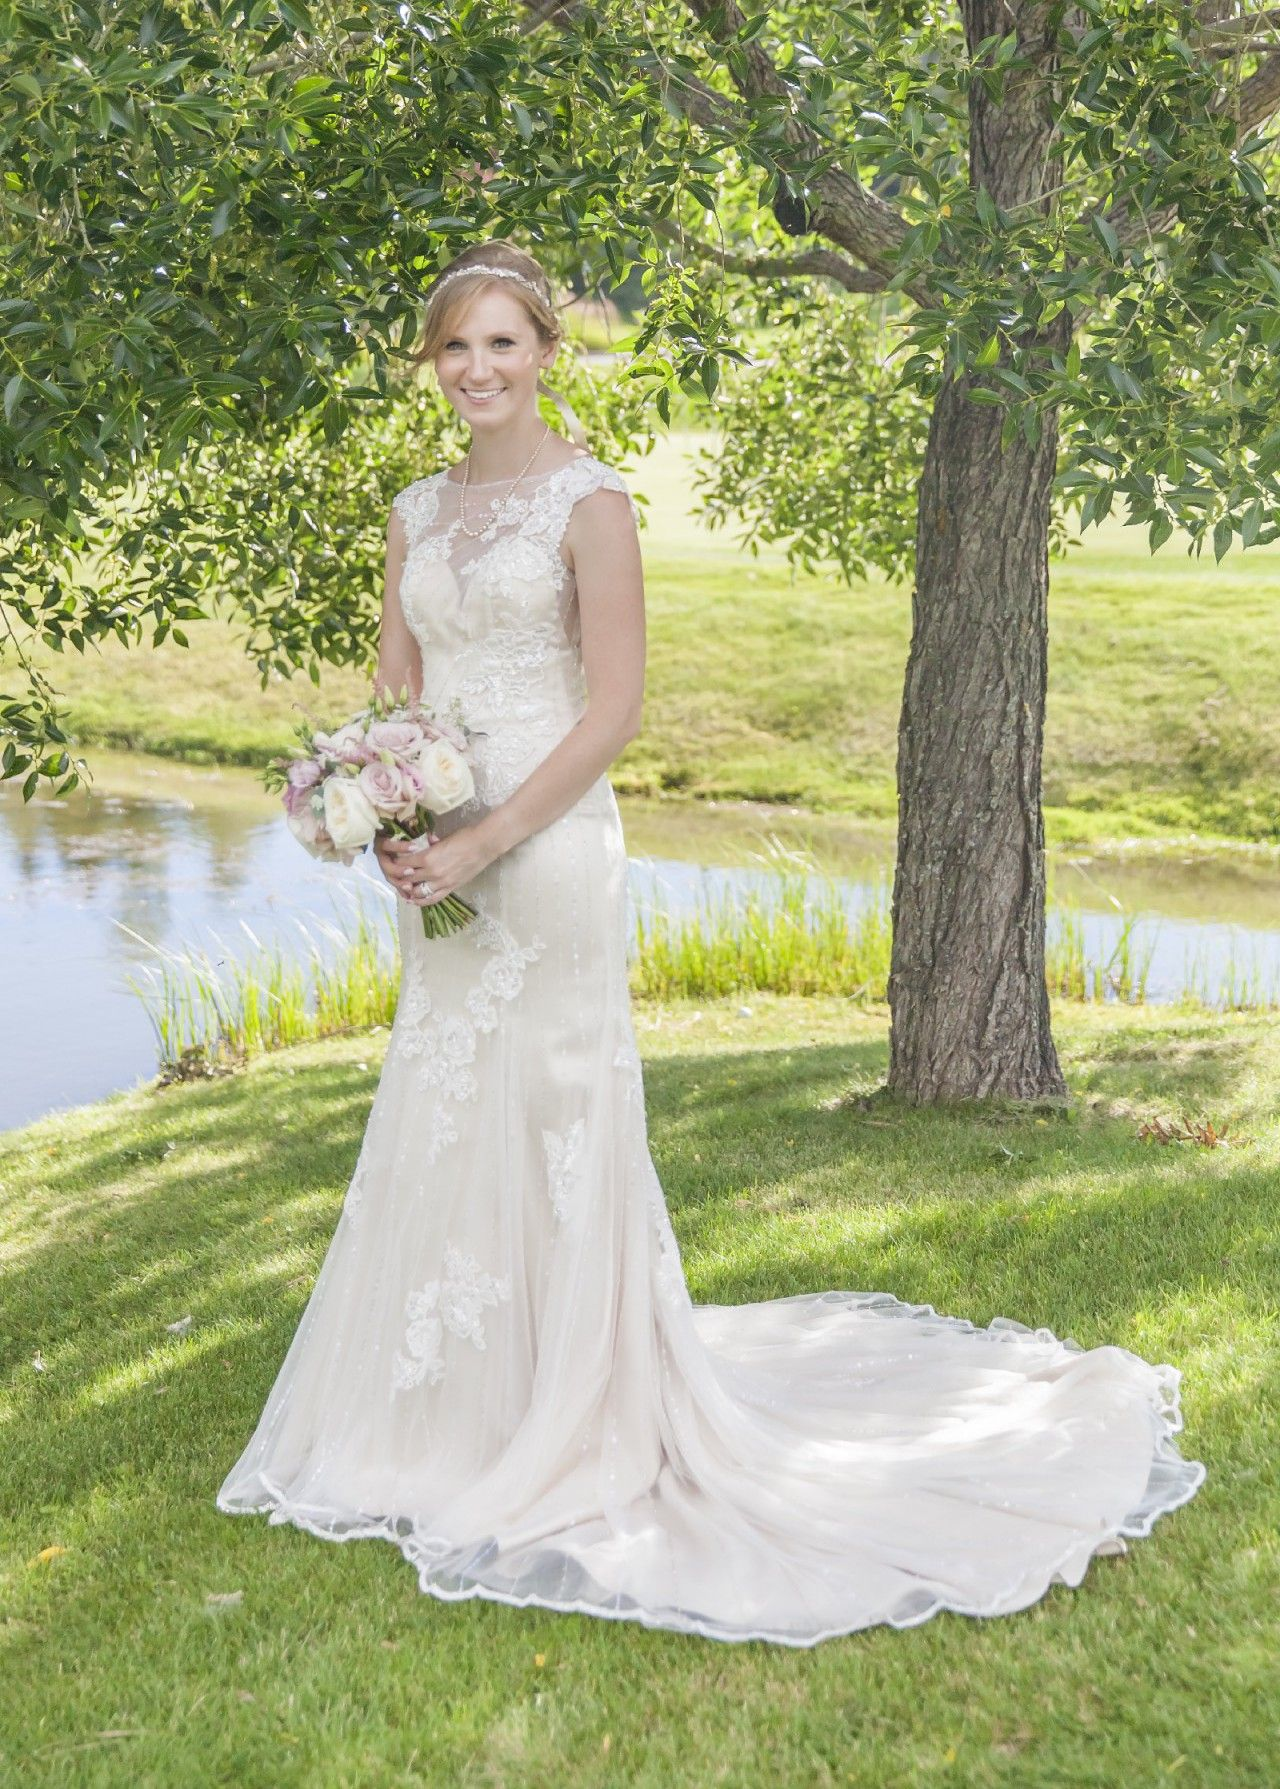 Maggie sottero savannah marie size 0 wedding dress maggie maggie sottero savannah marie size 0 wedding dress ombrellifo Image collections